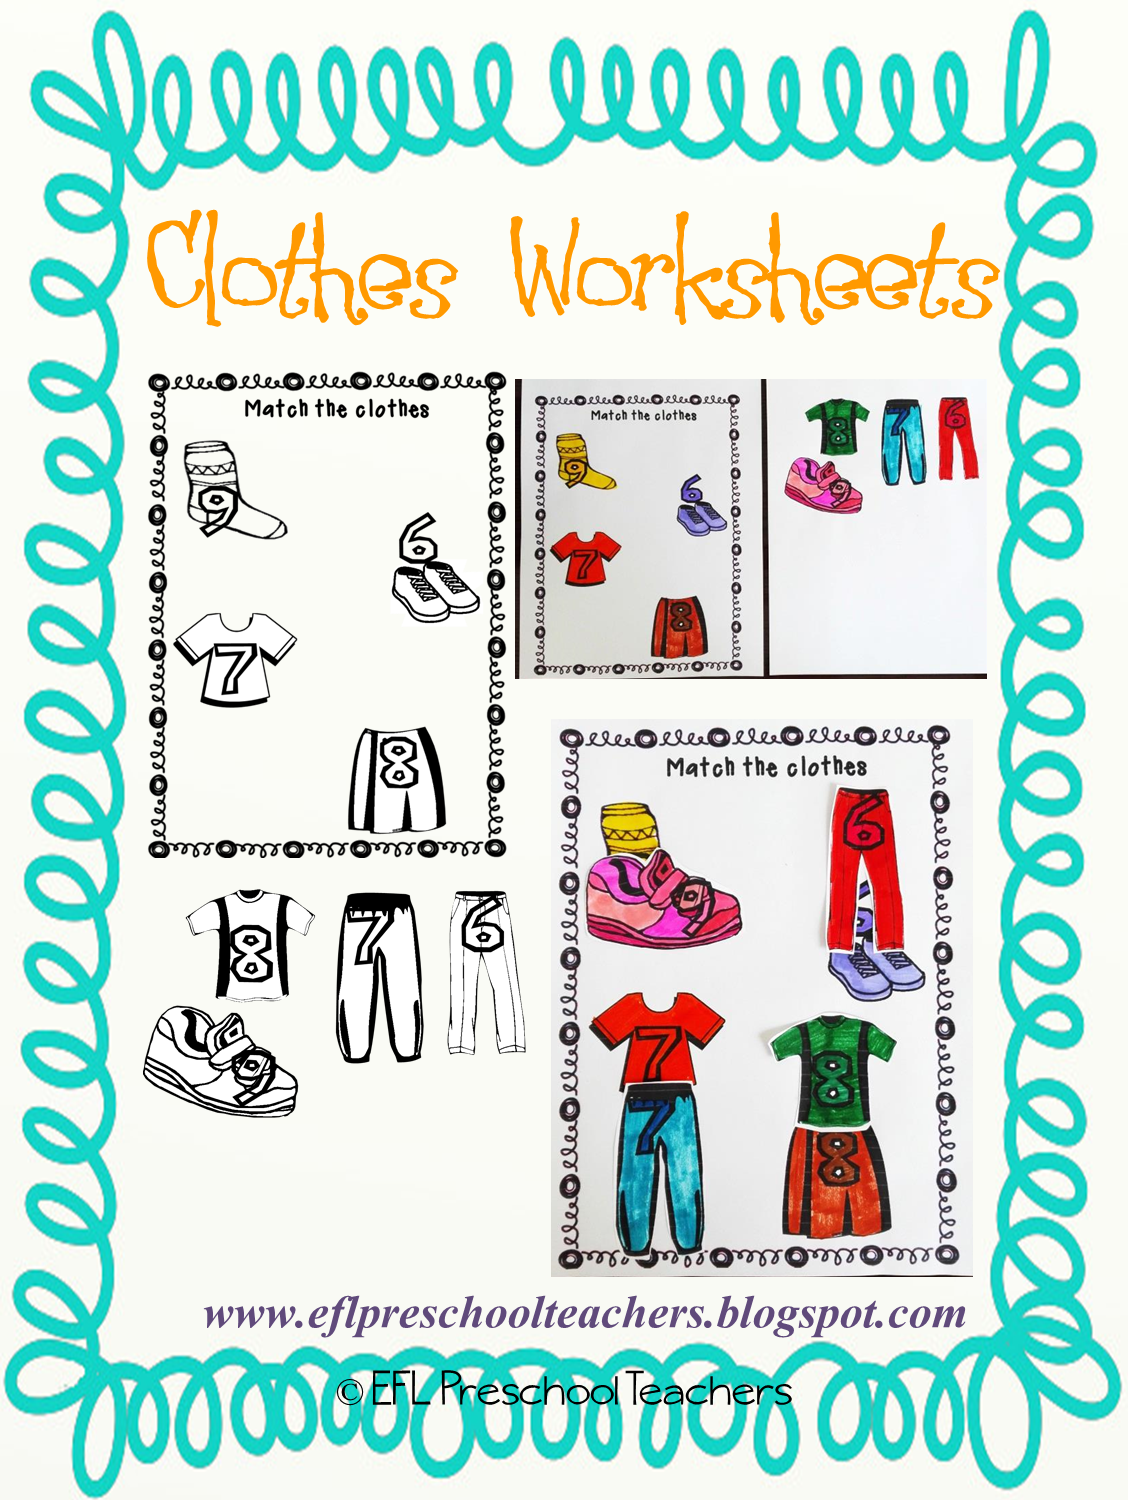 Esl Efl Preschool Teachers Clothes Worksheets